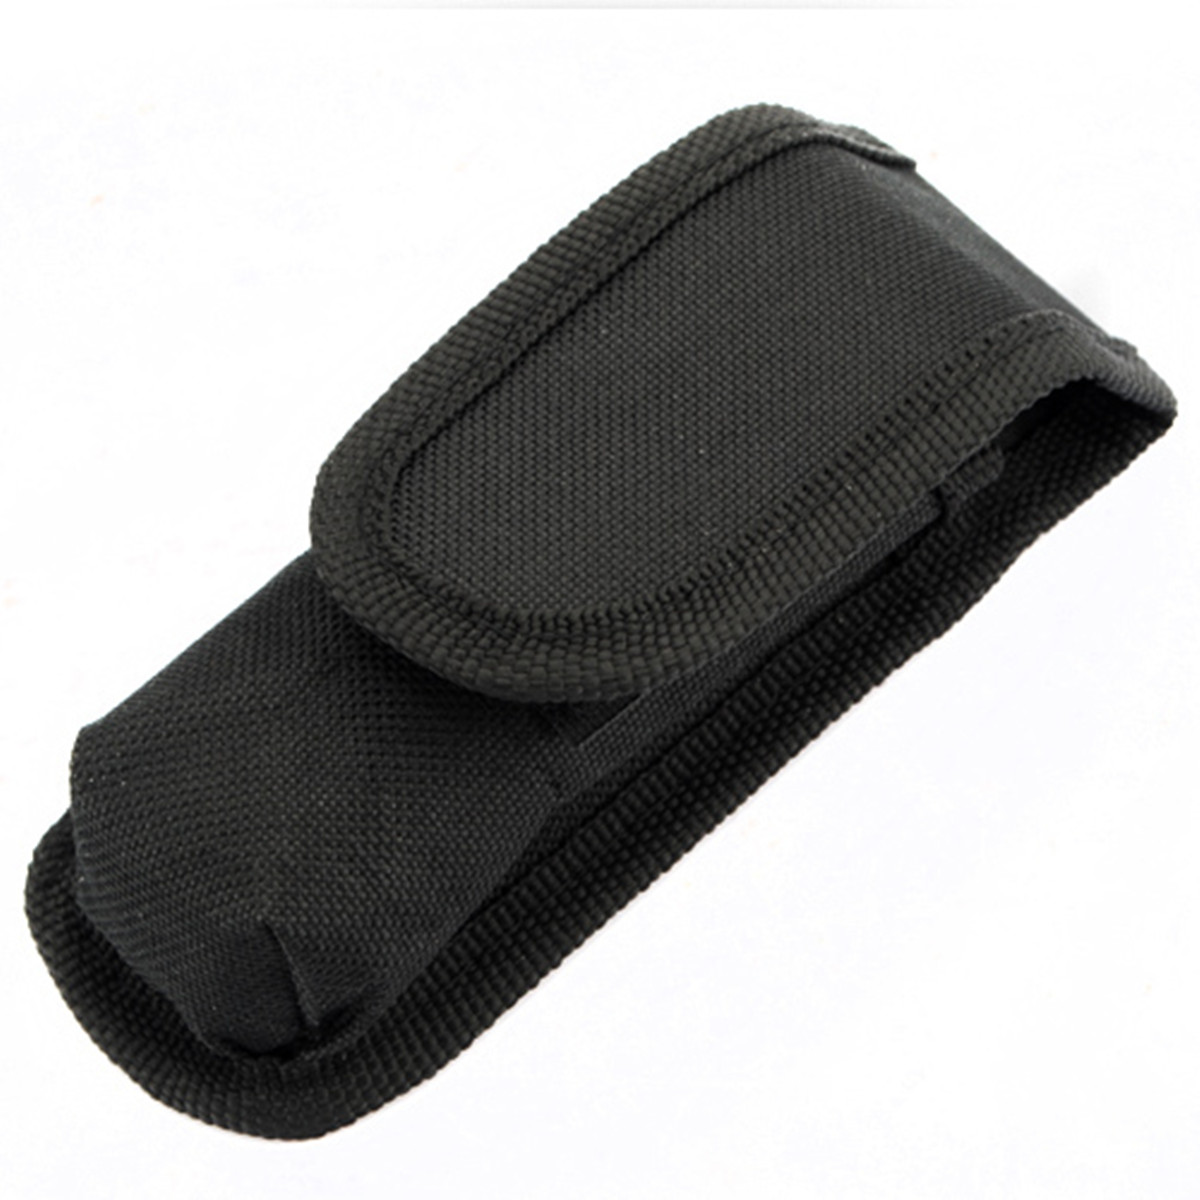 High Quality Black Nylon Magic Sticker Flashlight Holster Pouch Torch Cover Case Belt Bag Folded Size 12.5X4.7X3.5cm